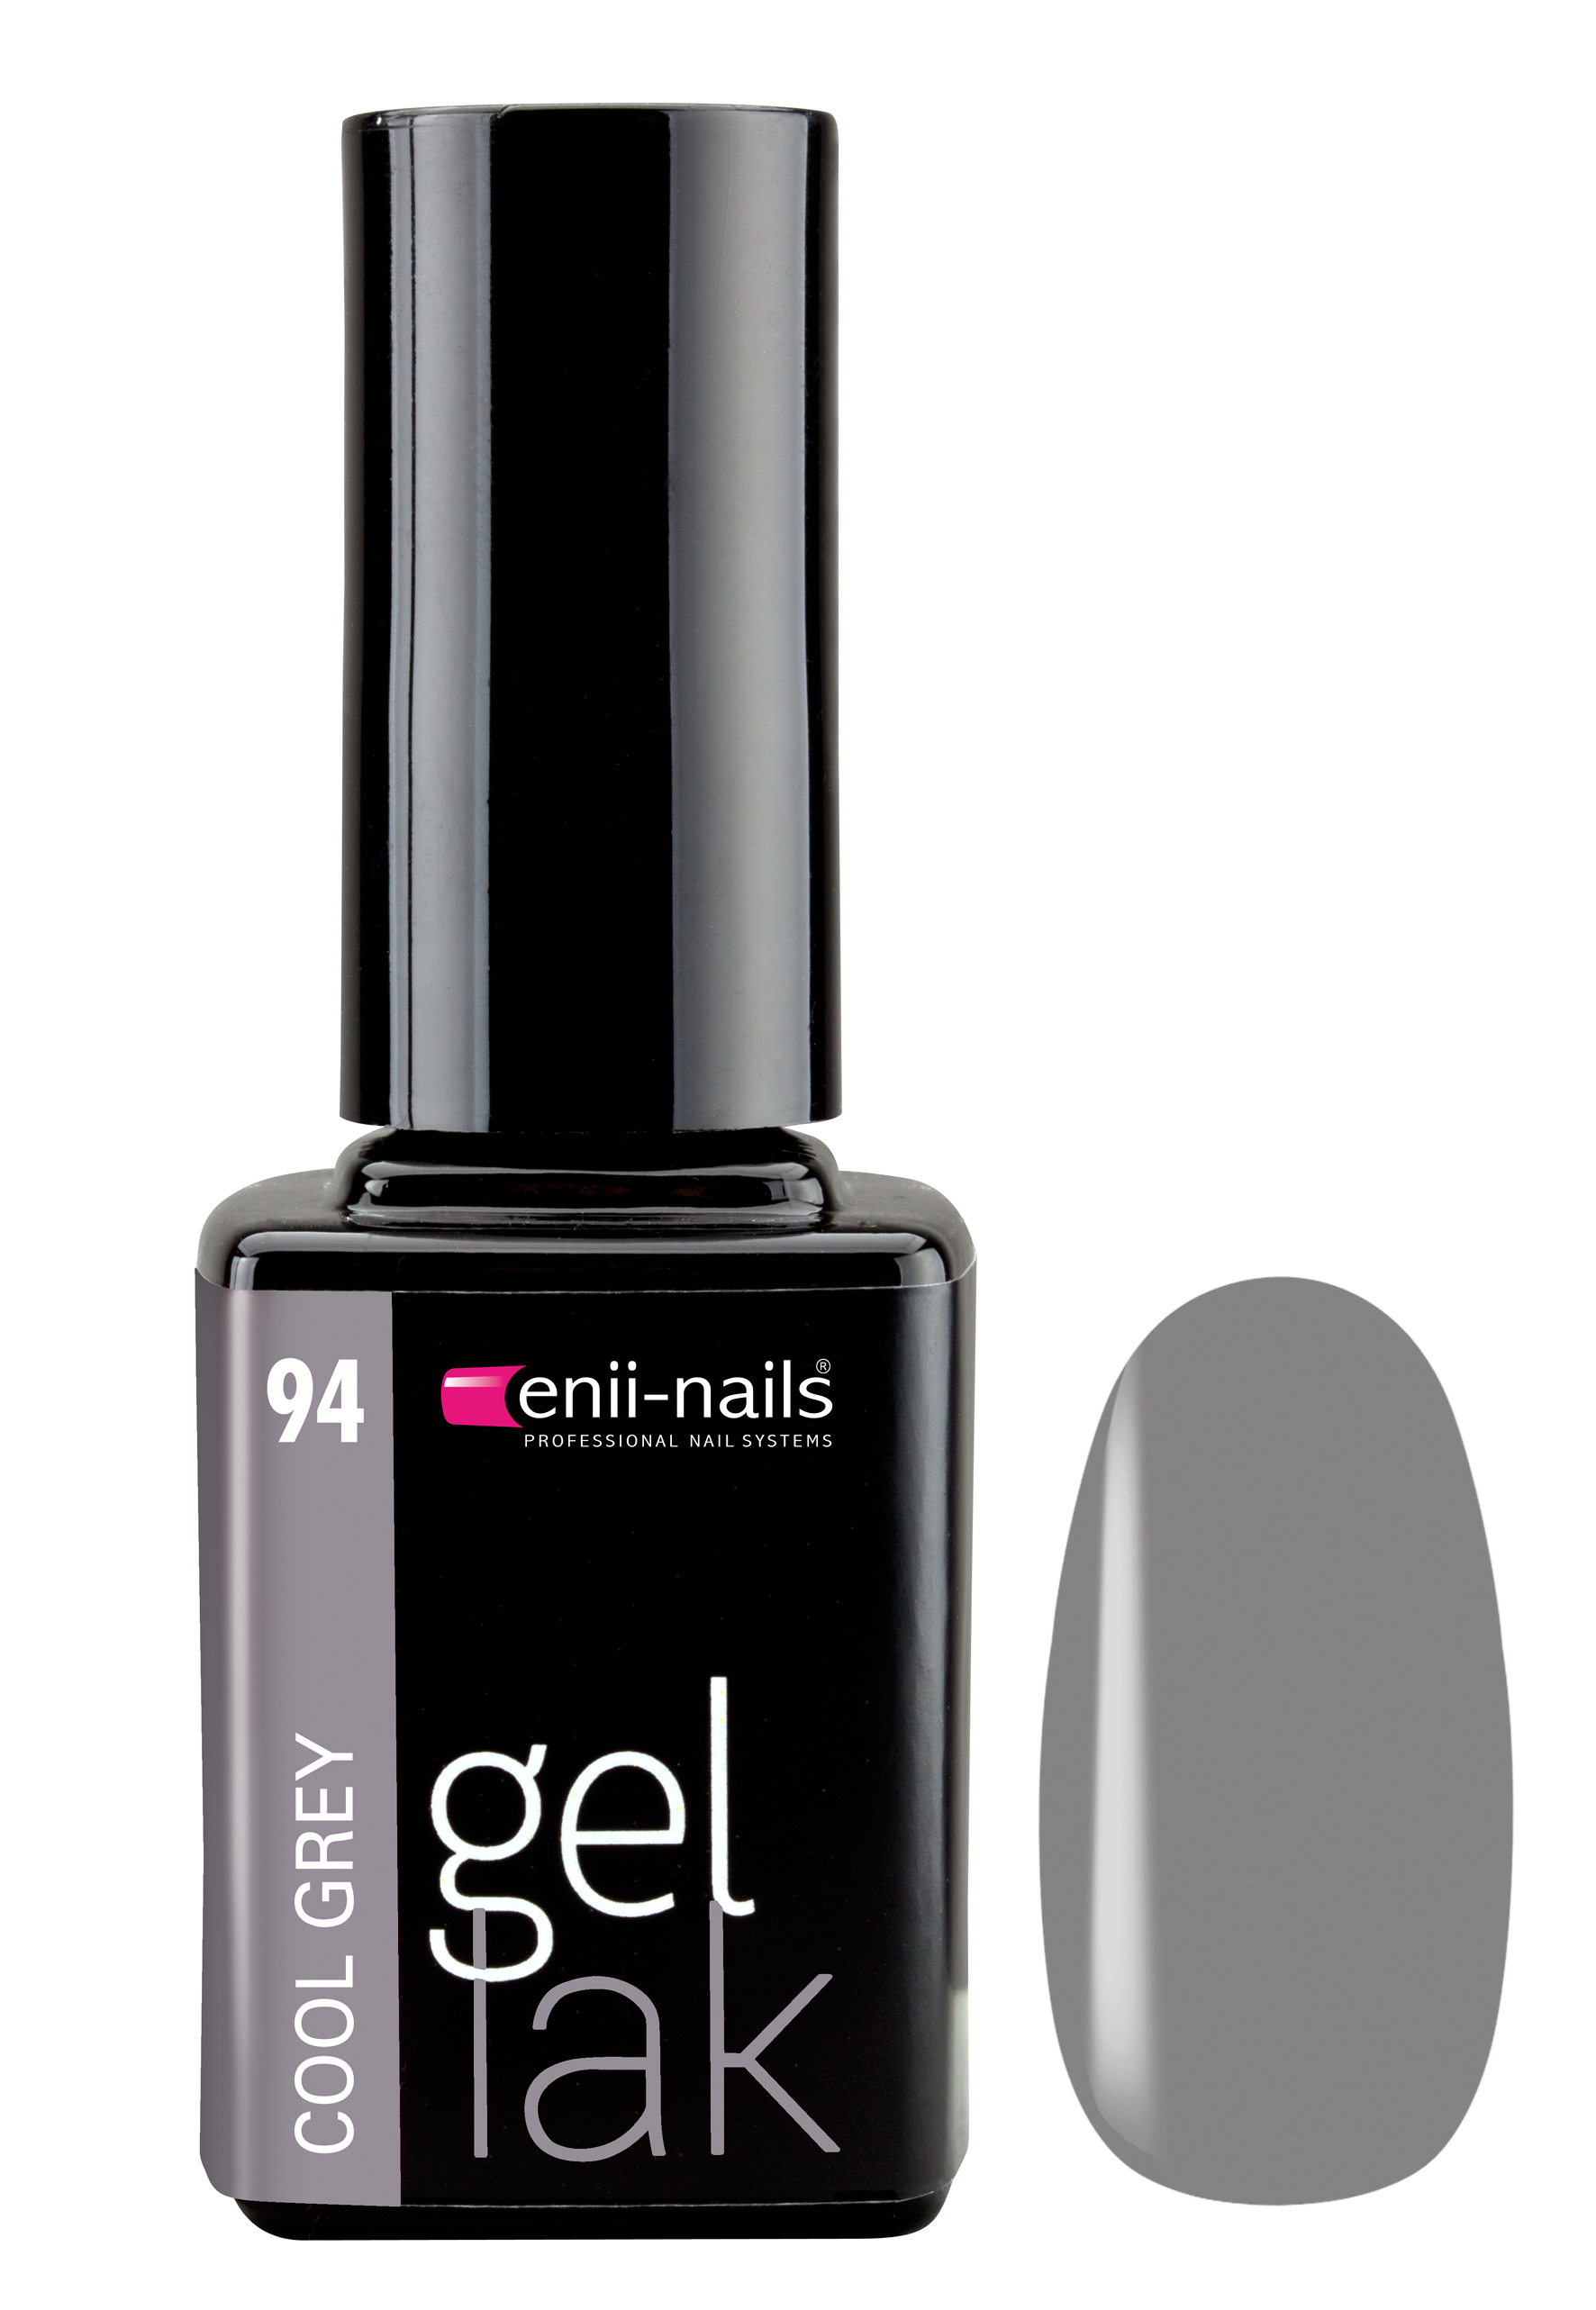 ENII-NAILS Gel lak 11 ml - Cool Grey